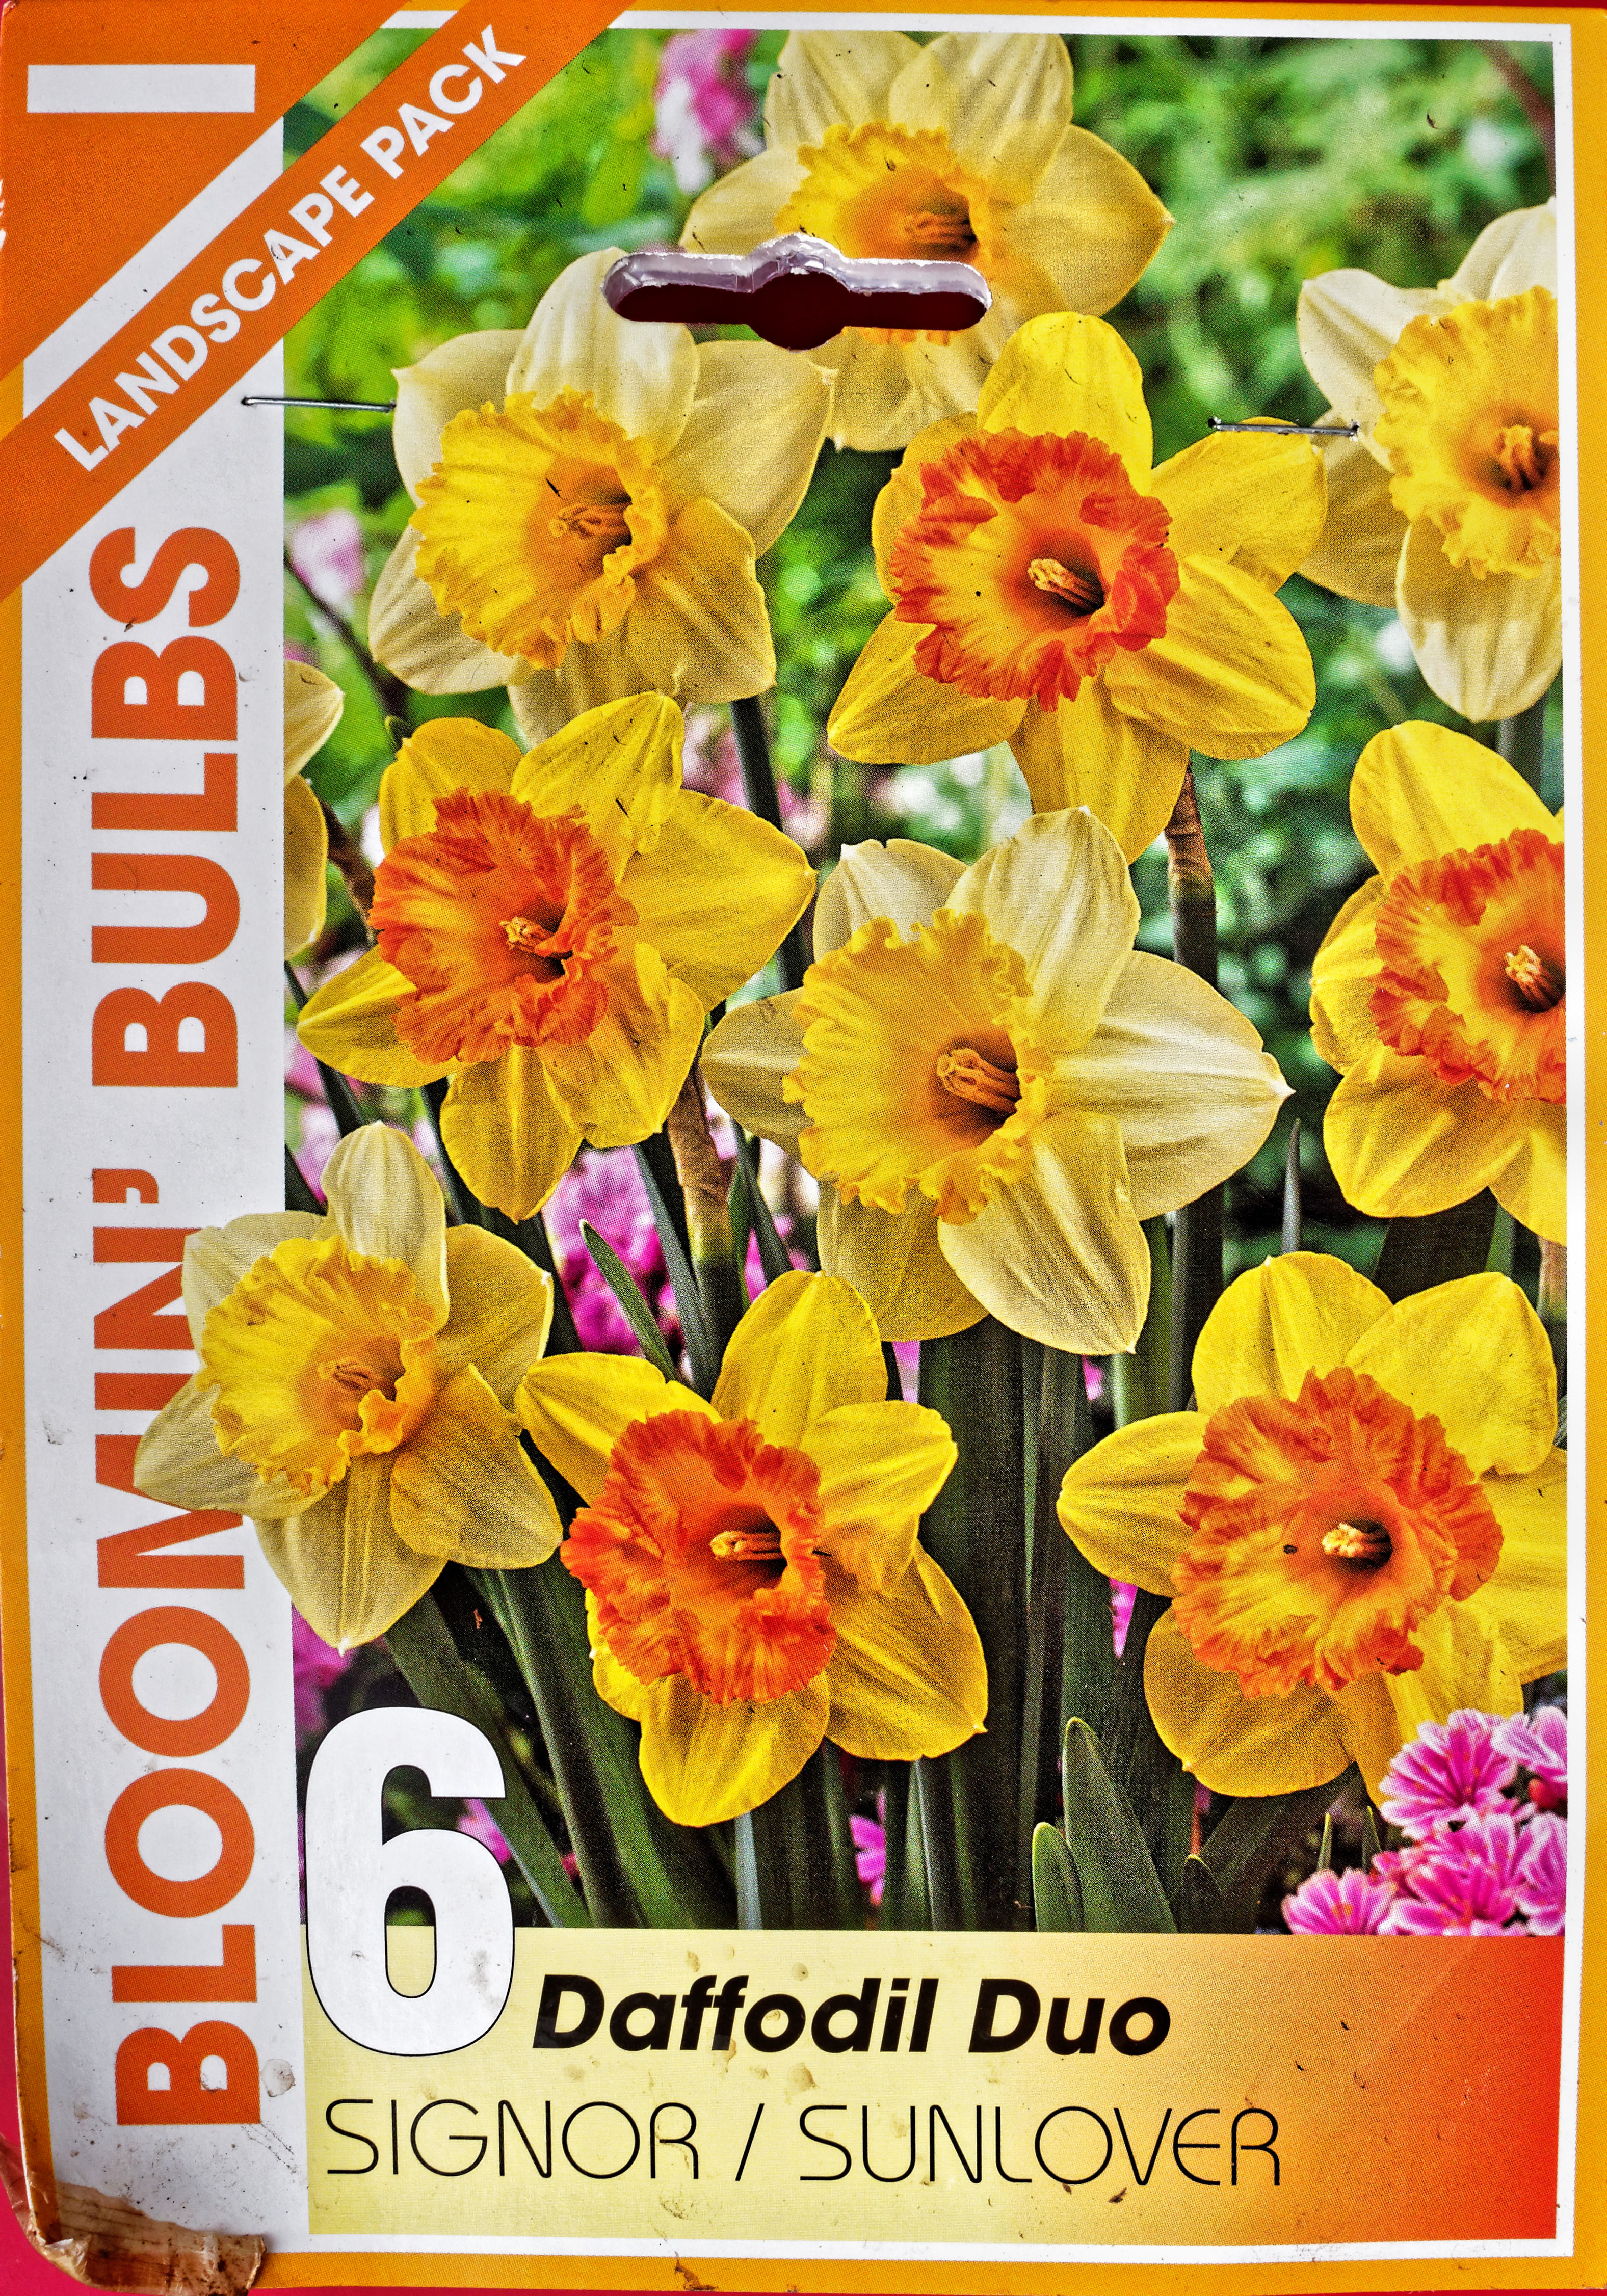 This should be Daffodil.jpeg.  Is it missing?